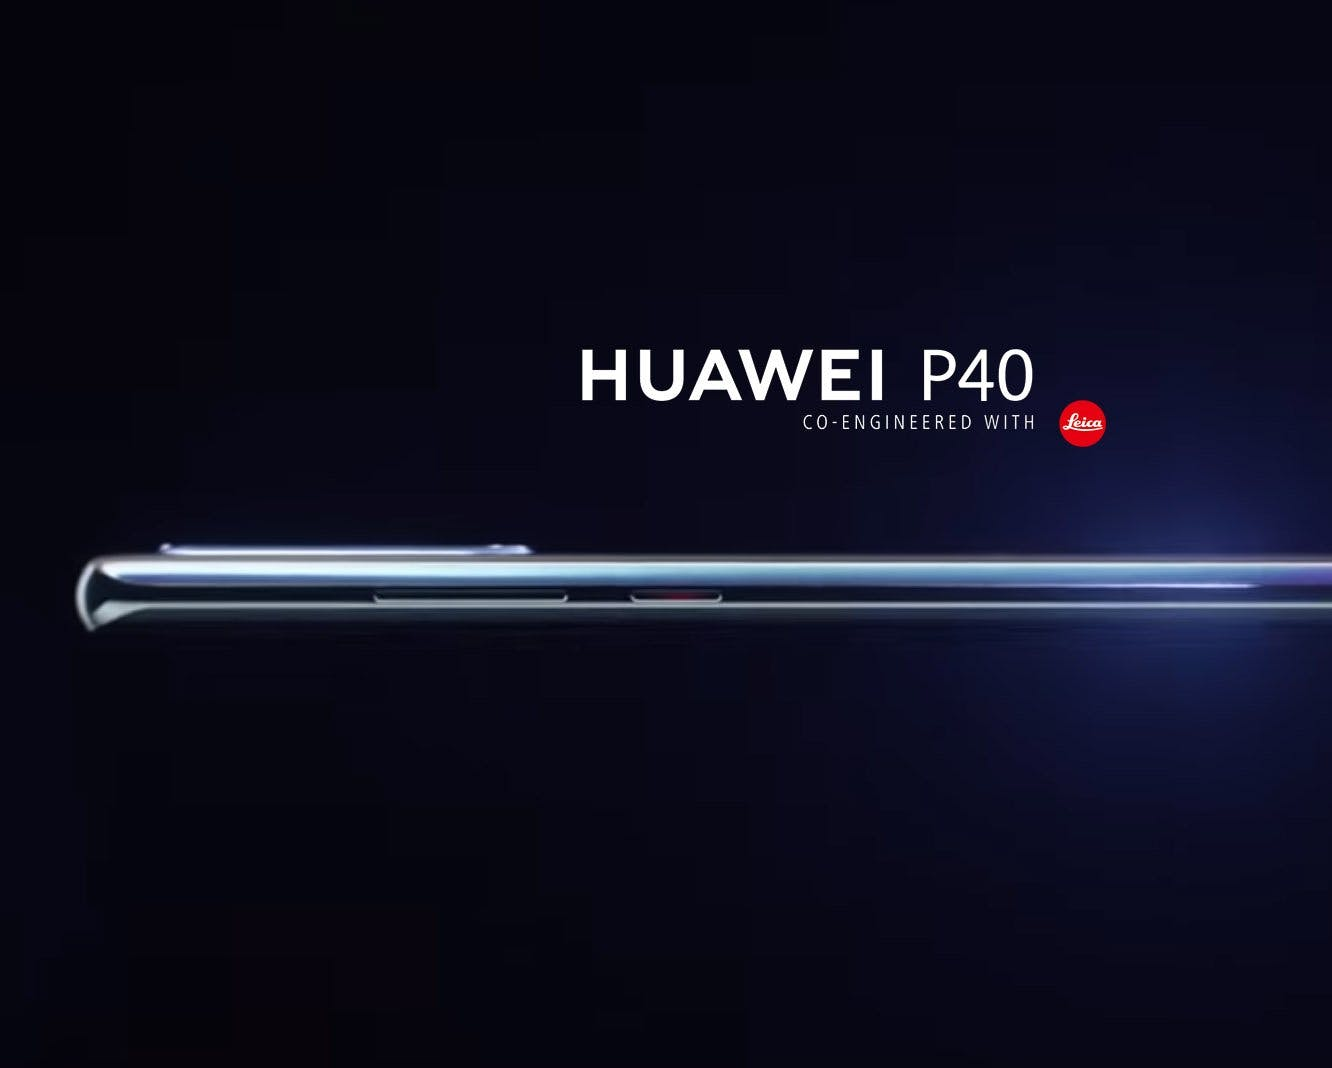 What to Expect From the Huawei P40 Series Without Google Services